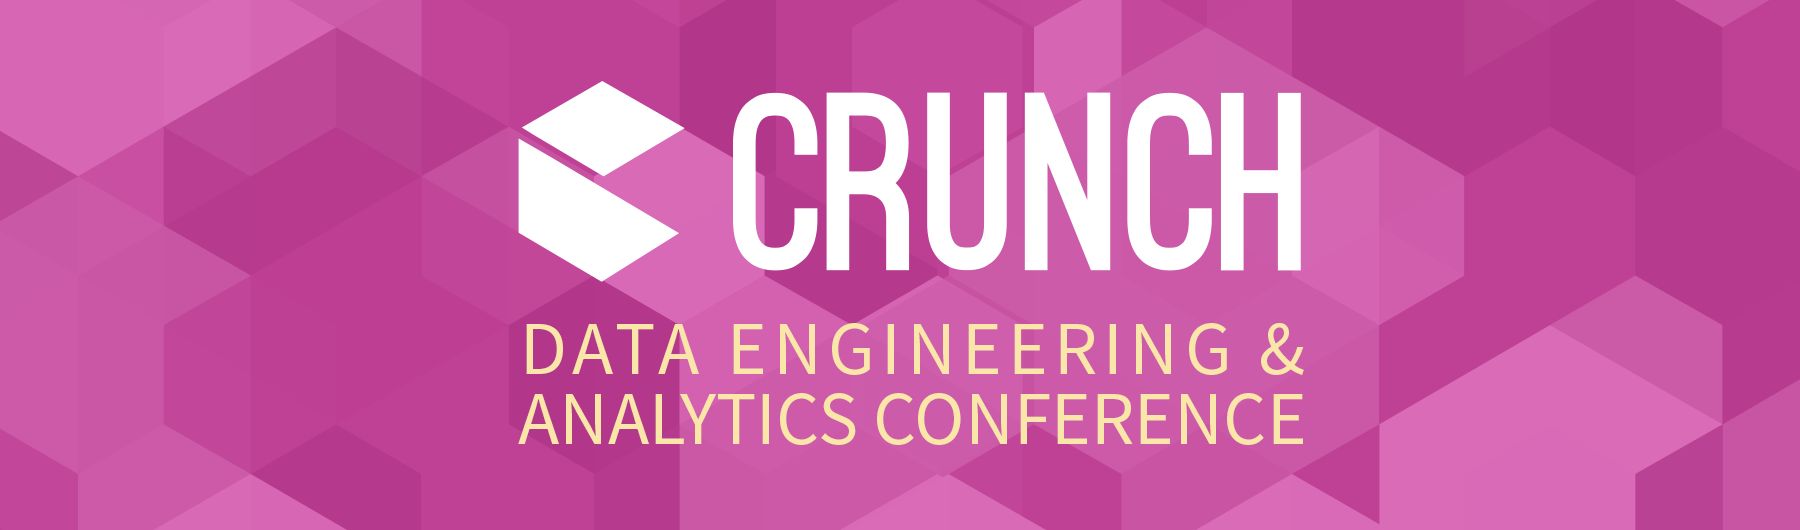 Crunch Conference 2018